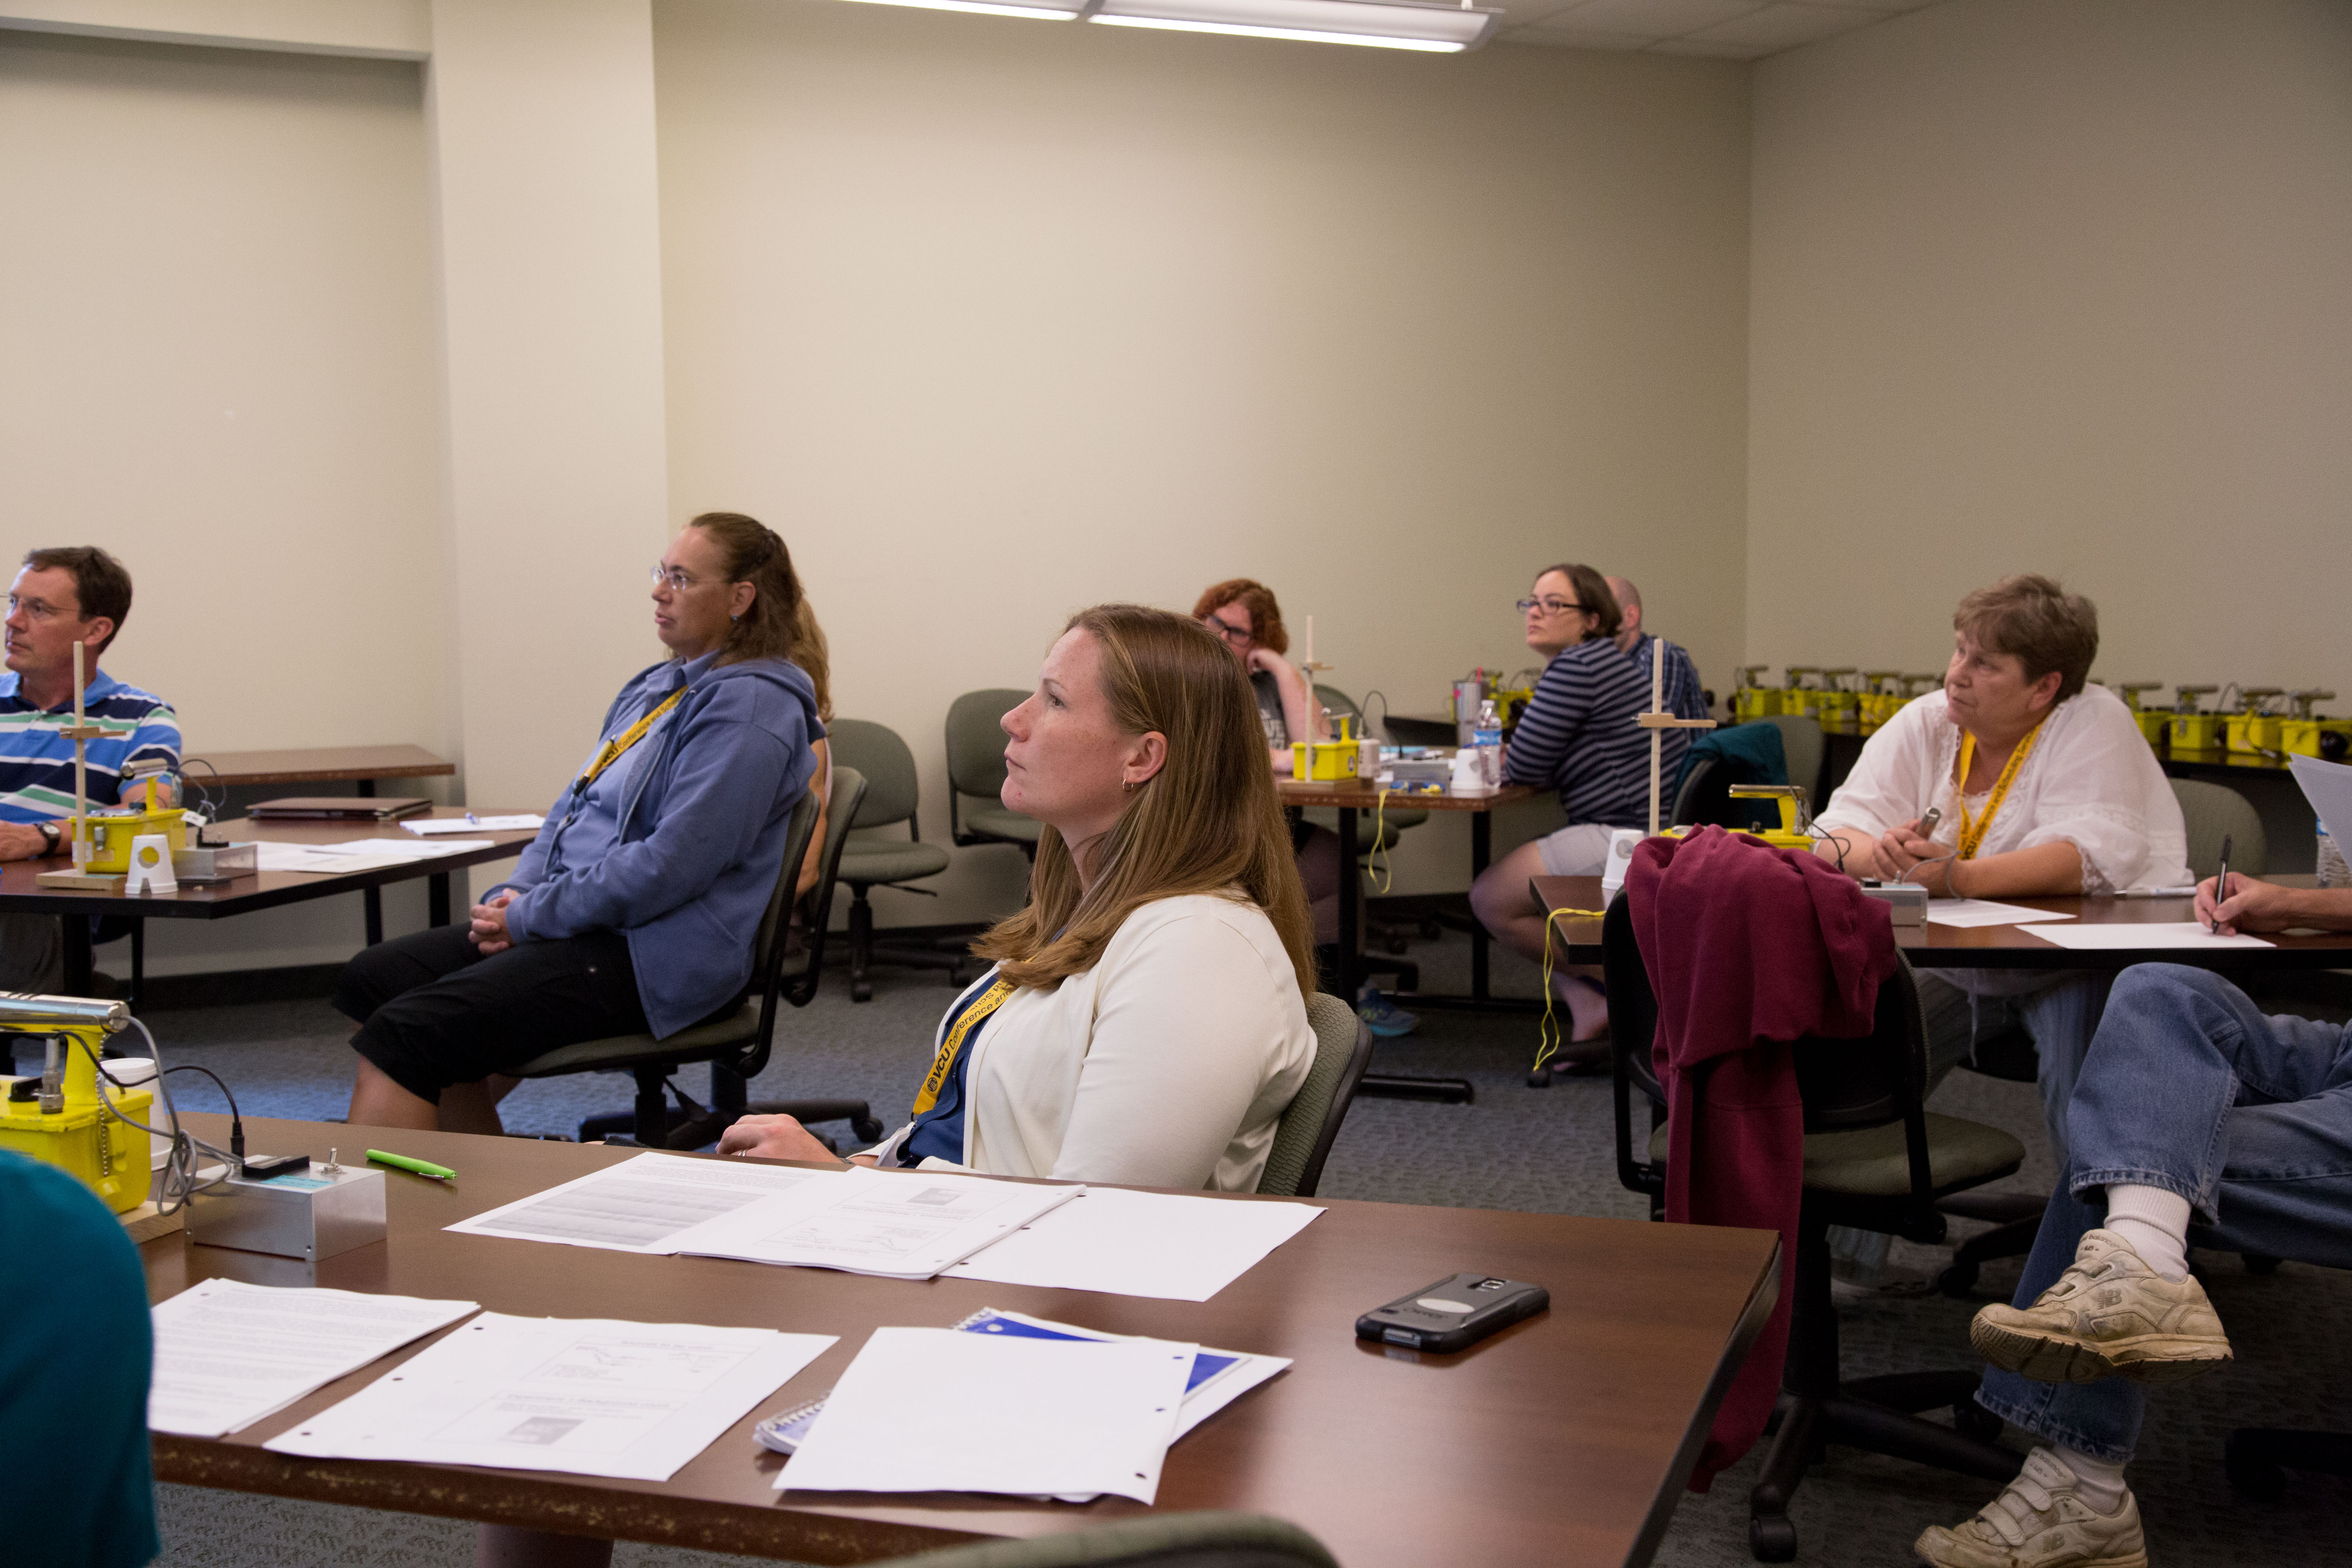 science-teachers-workshop-07-2016-5624_27713100613_o